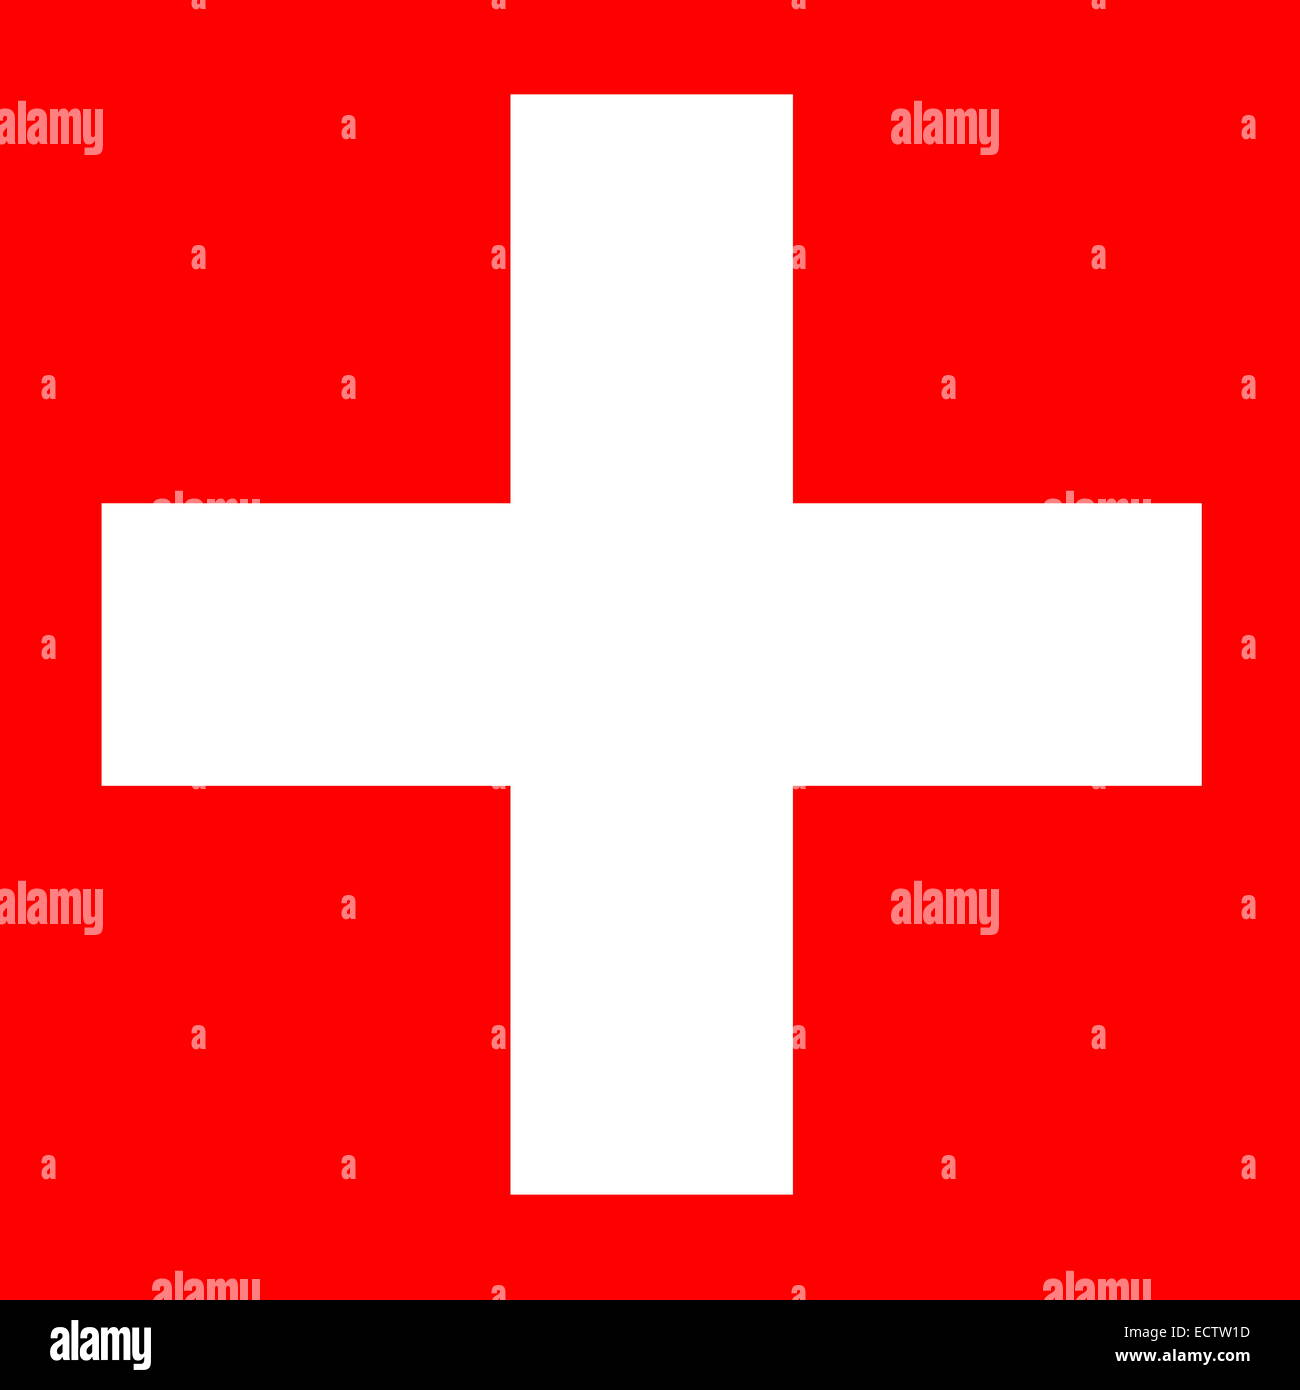 White Cross In Square Red Background For Swiss Flag Stock Photo